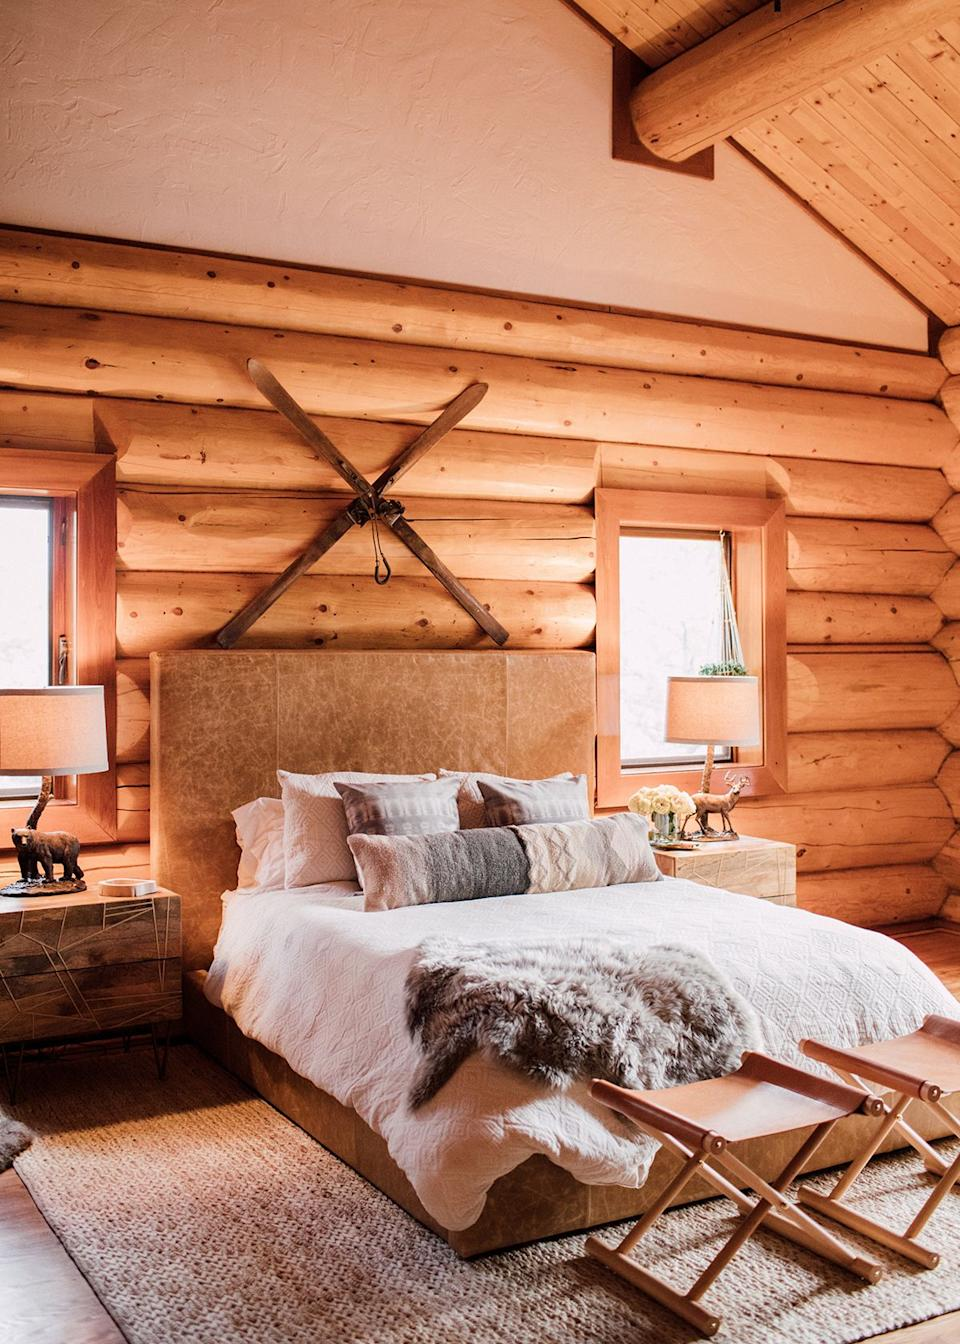 In the bedroom, cozy vibes abound. A fur throw, soft lighting, and plenty of pillows make you want to curl up and read a great book in this plush retreat.